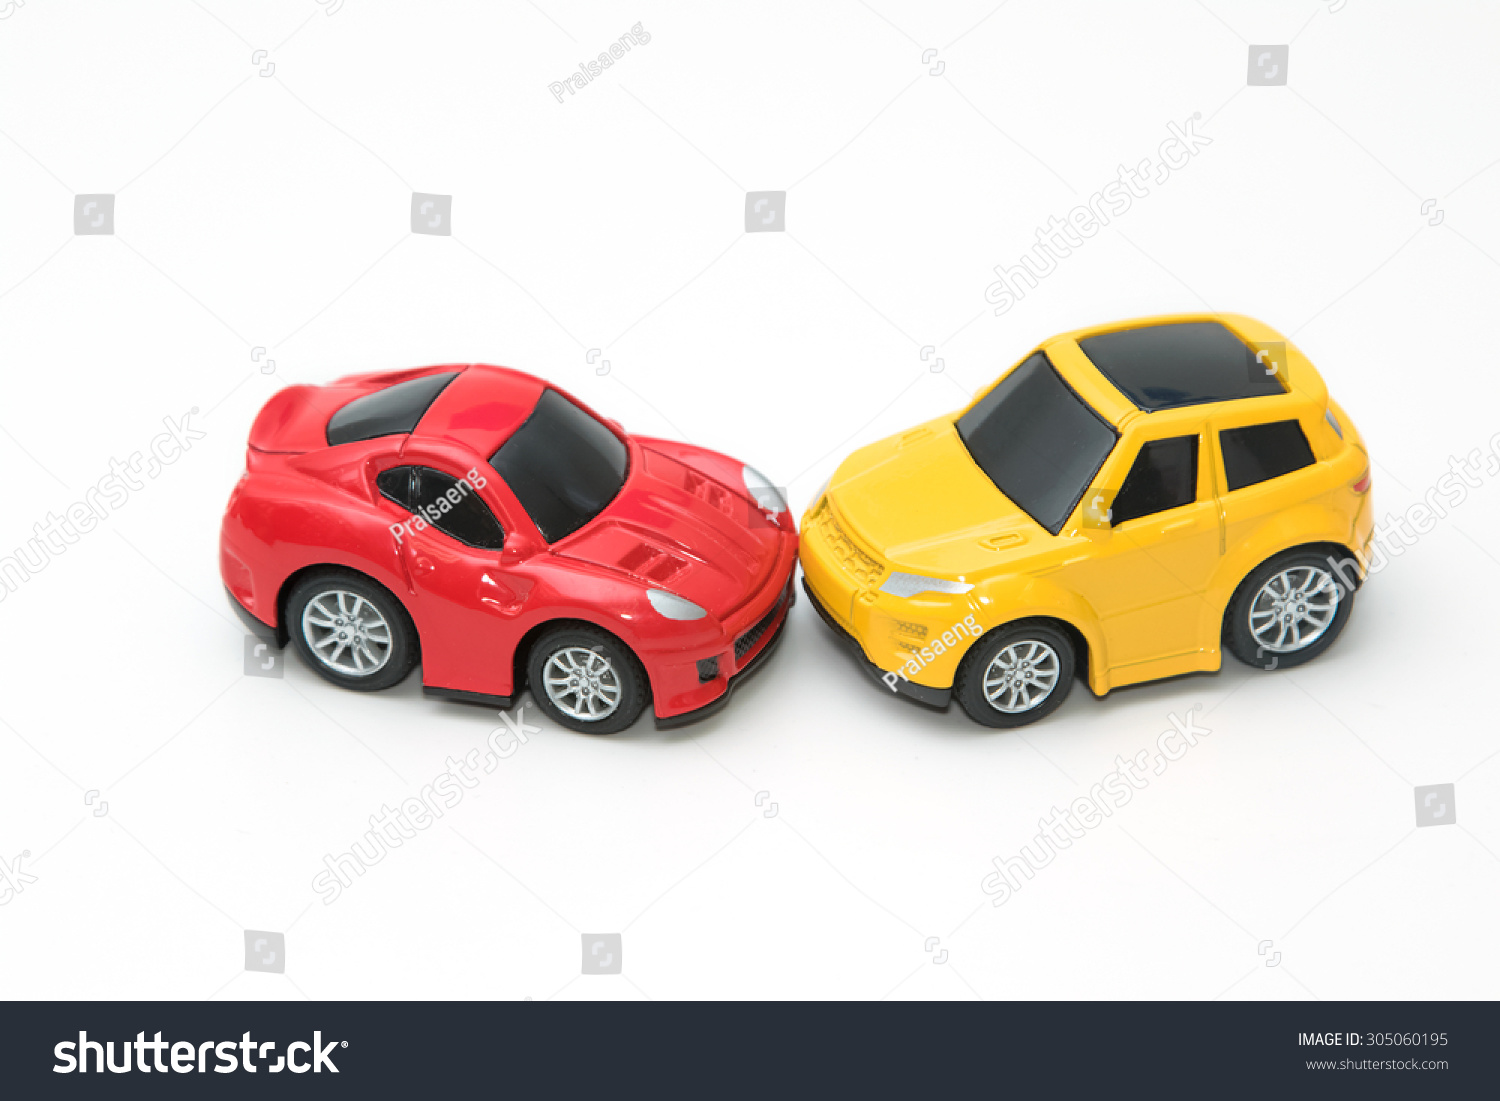 Safest car color accidents - Toy Cars In Accident On A White Background Concept Safety Car